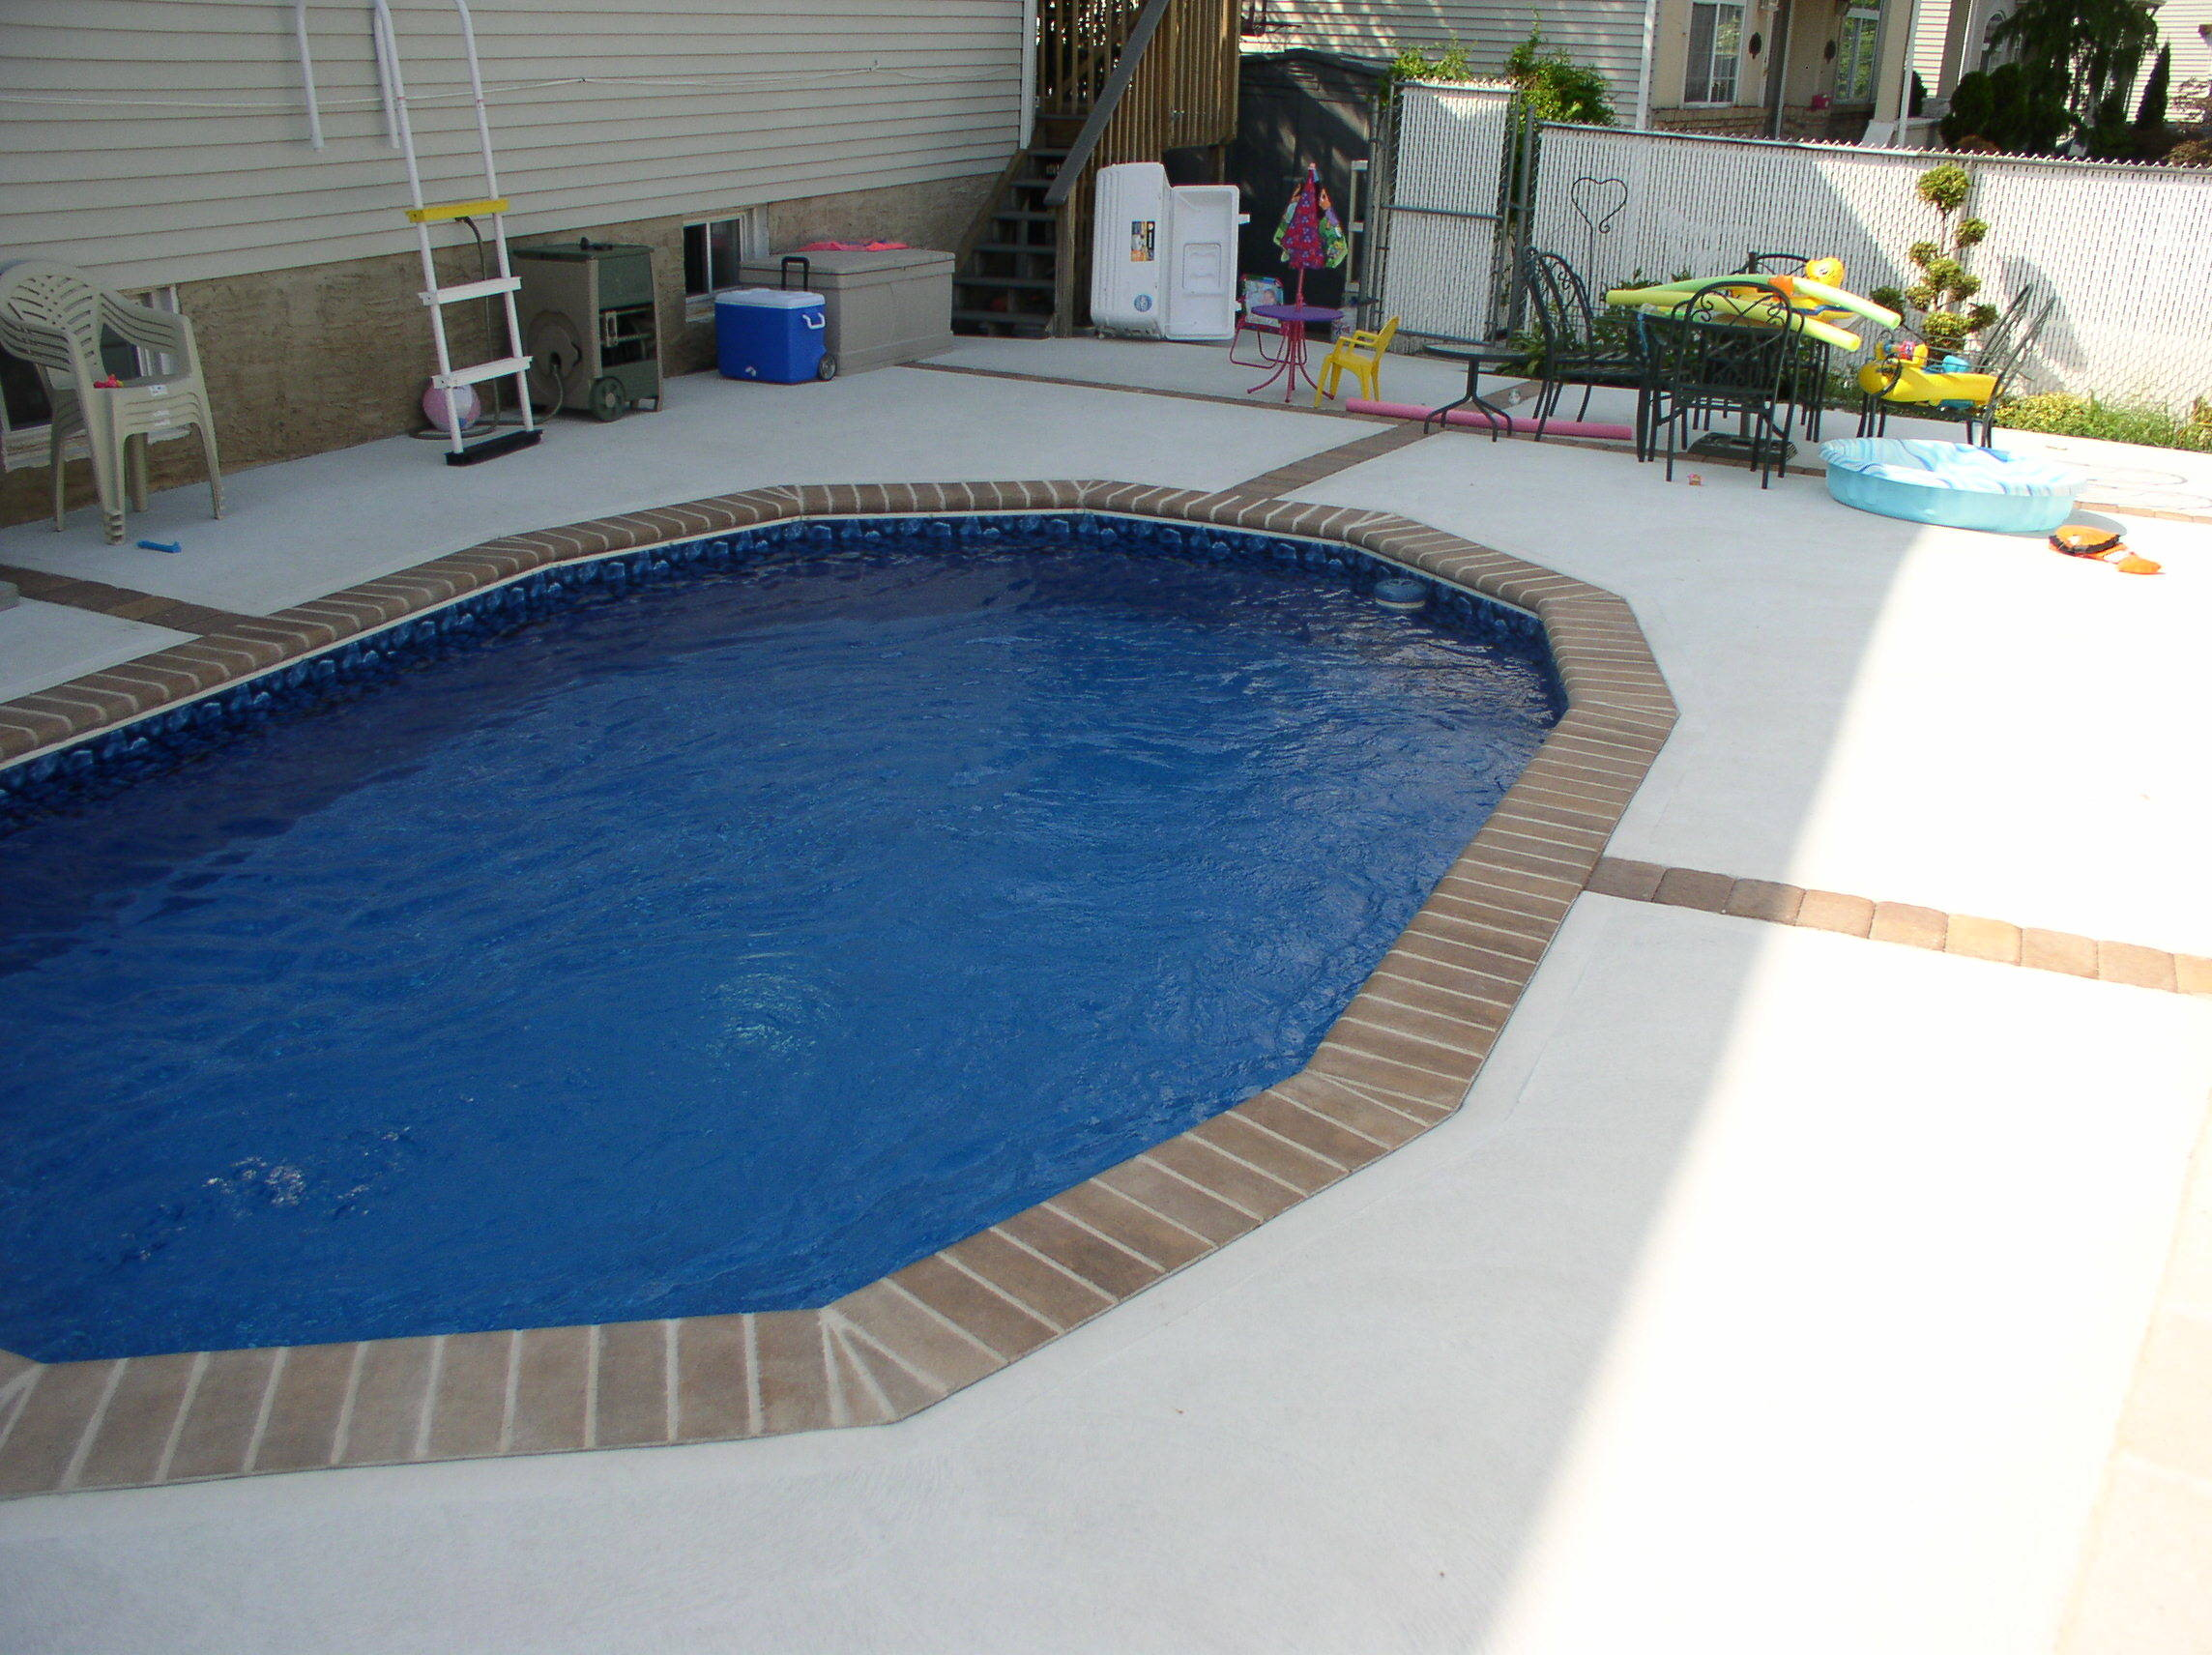 Swimming Inground Pools : Semi inground pools brands options prices reviews and advice